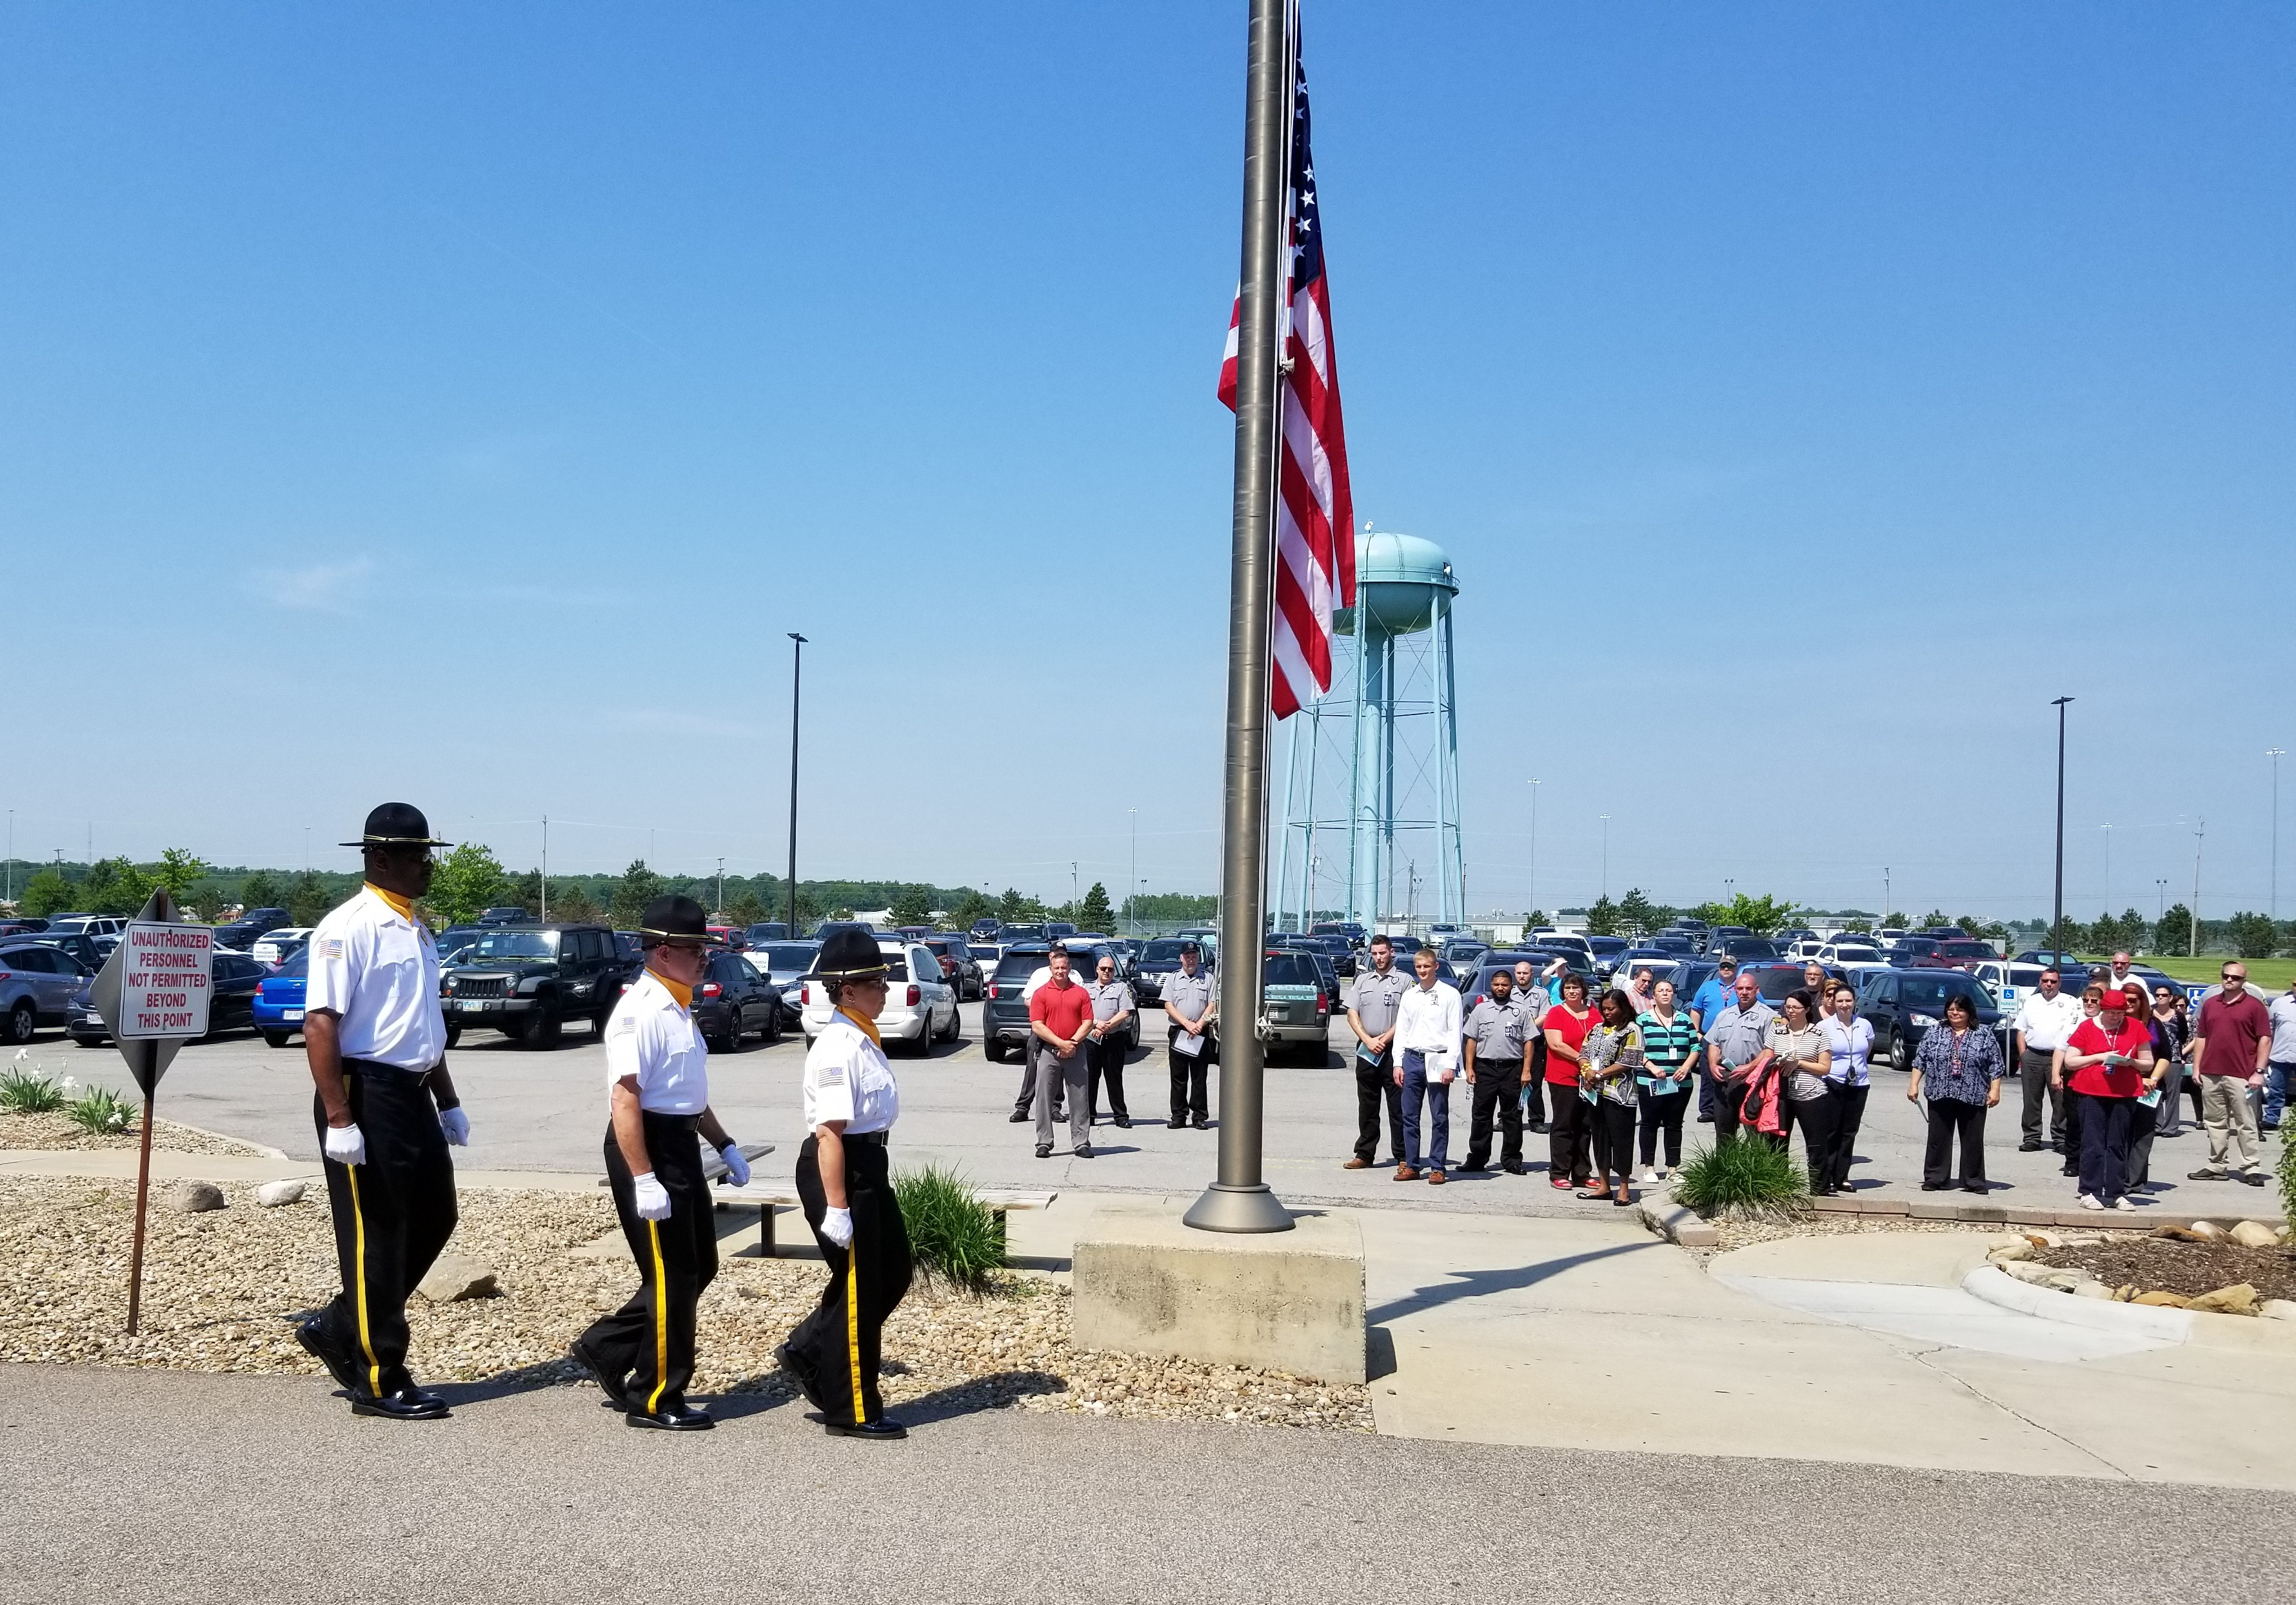 Ceremony Held at LorCI for Those Who Have Served Our Country